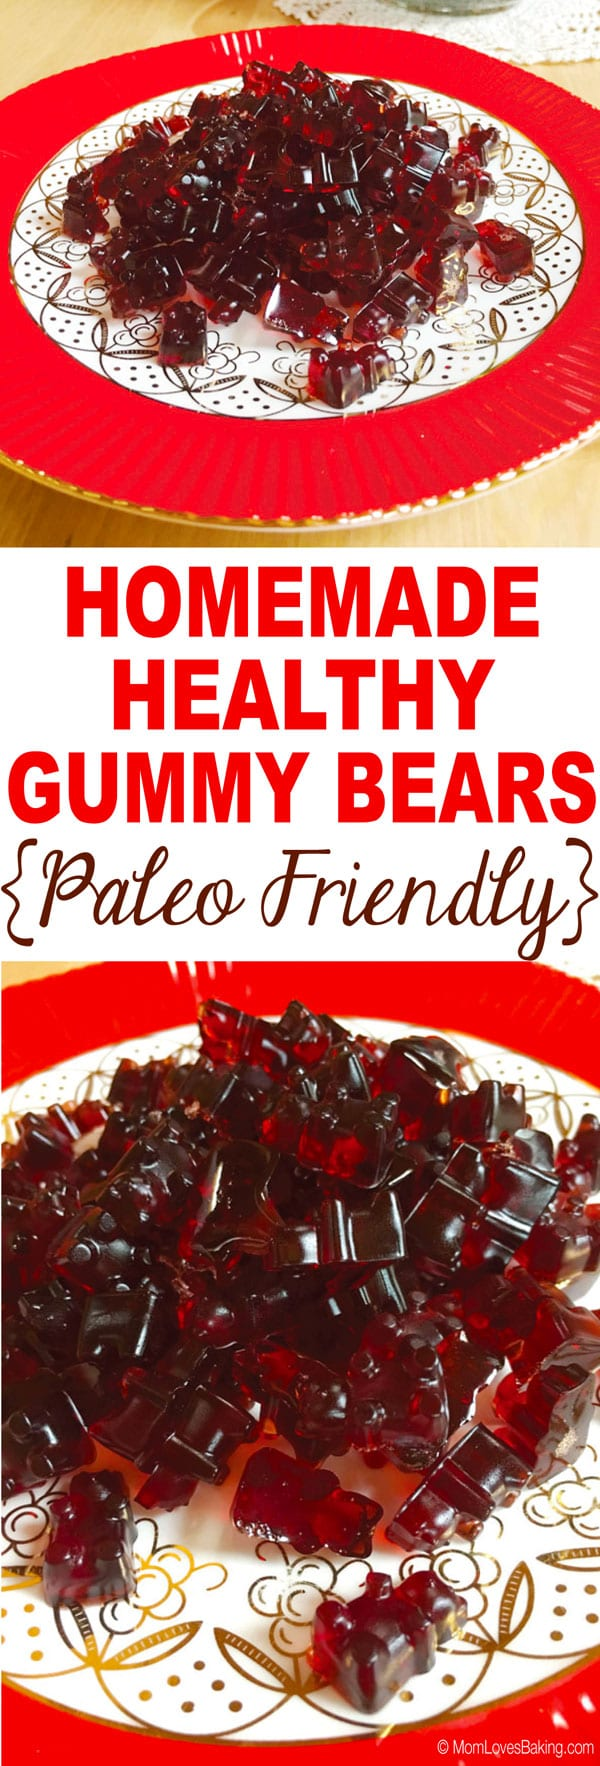 Homemade Healthy Gummy Bears Paleo Friendly